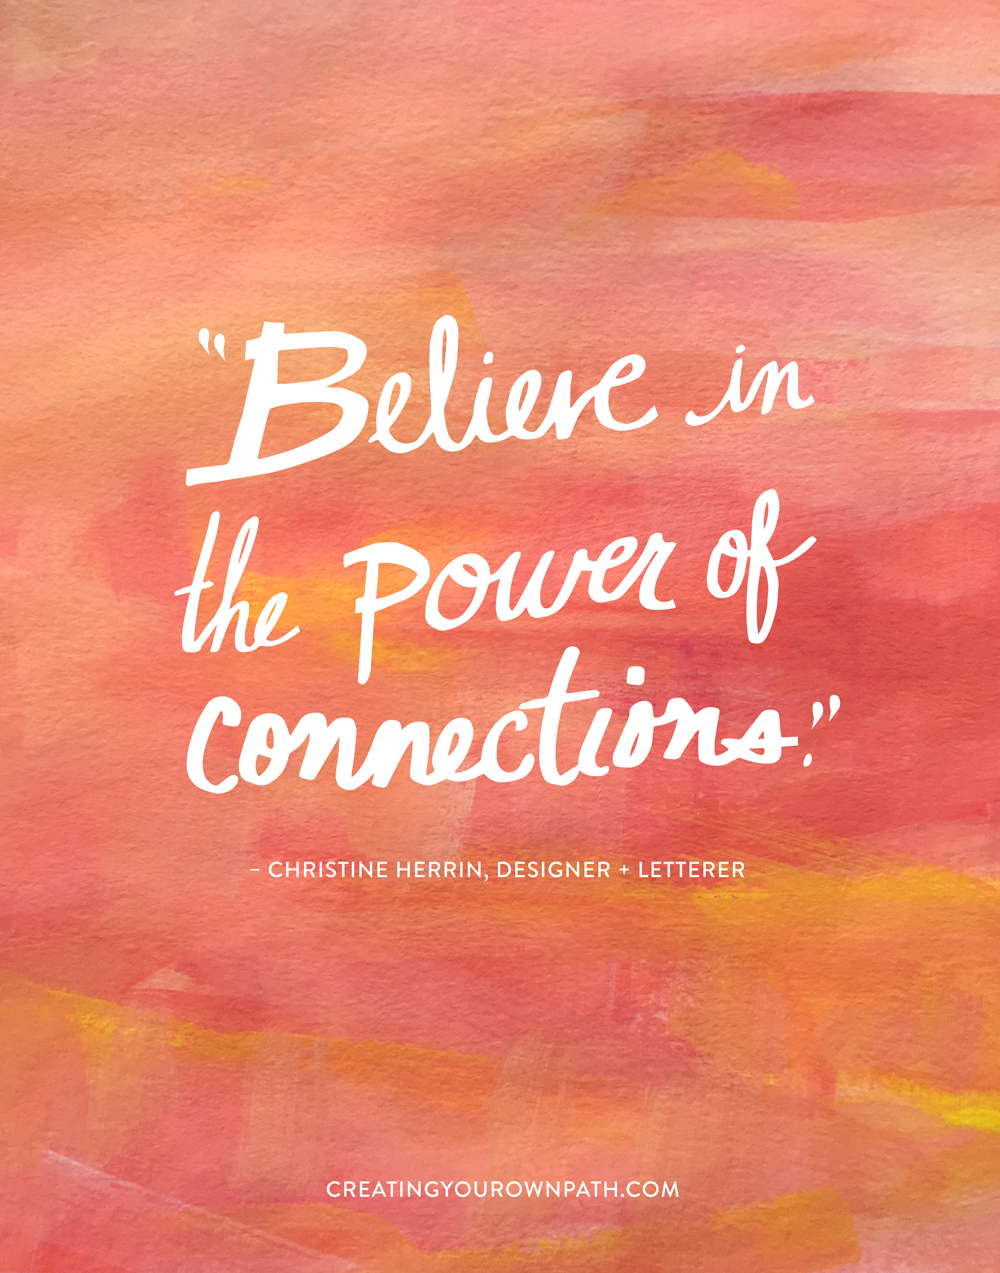 """Believe in the power of connections."" - Christine Herrin, Designer + Letterer // Art by  Melanie Biehle"